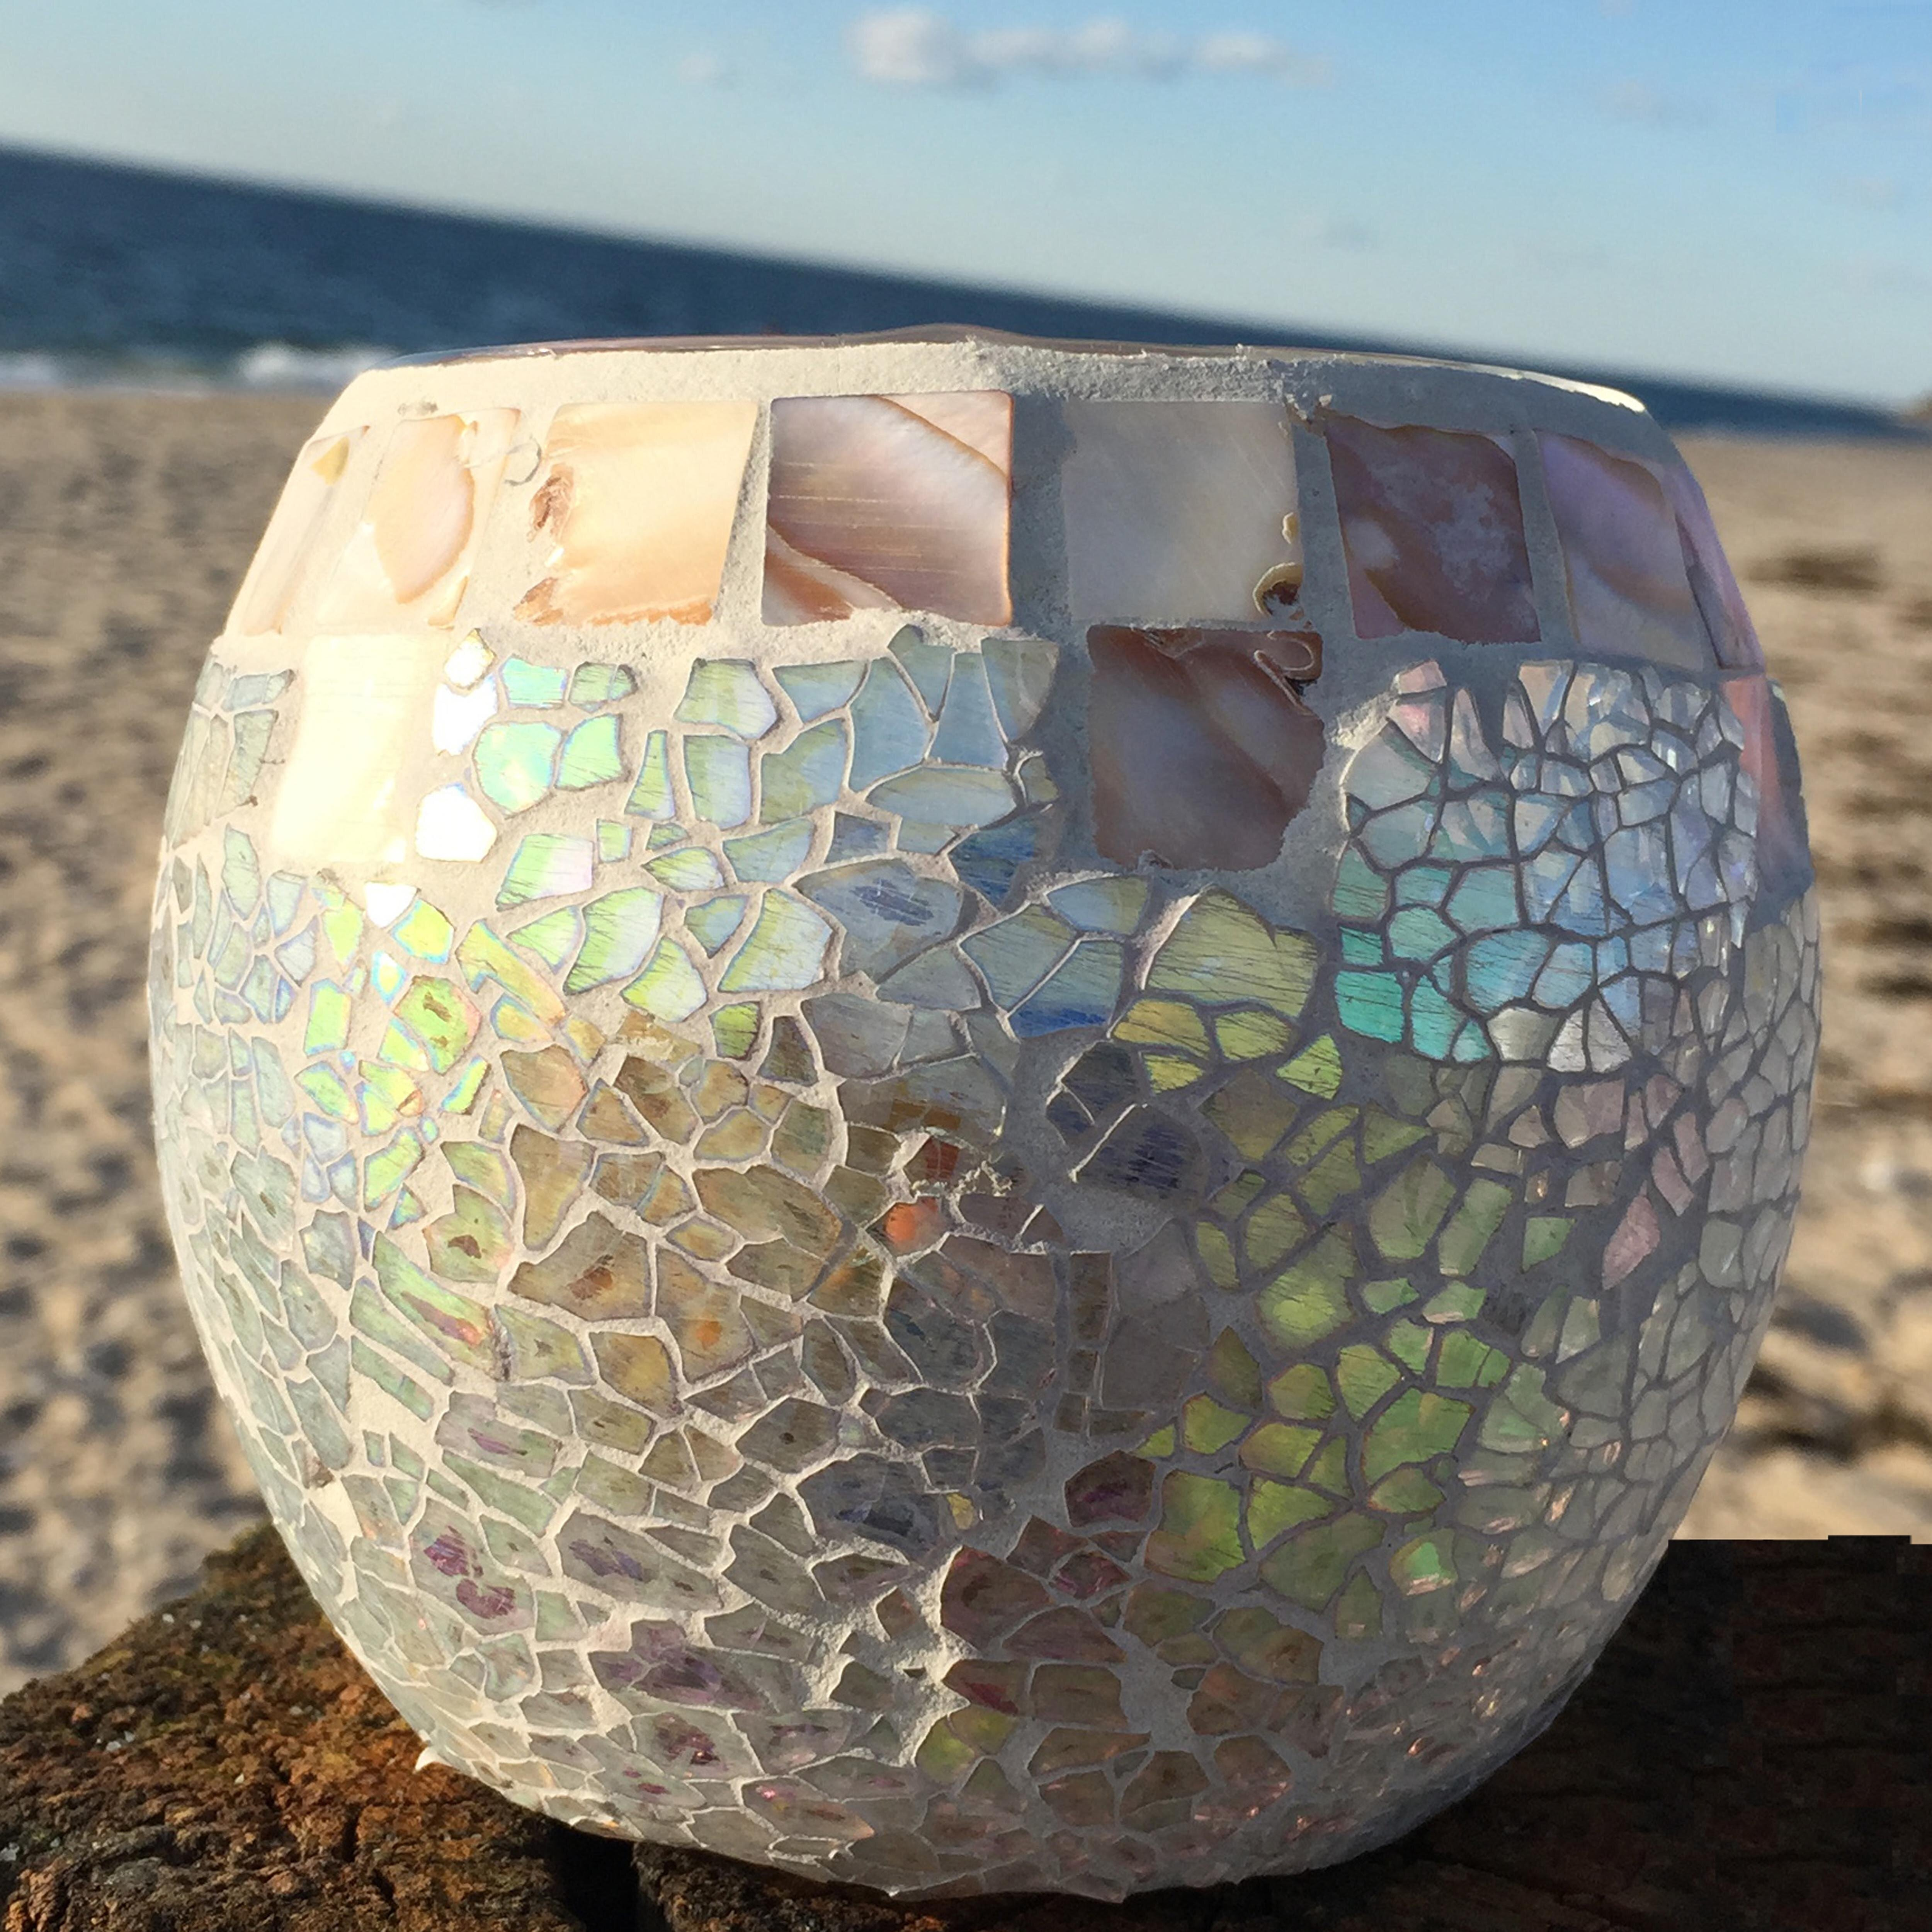 Mother Of Pearl Mosaic Nightstand Im Obsessed: Highland Dunes Mother Of Pearl Mosaic Ceramic And Glass